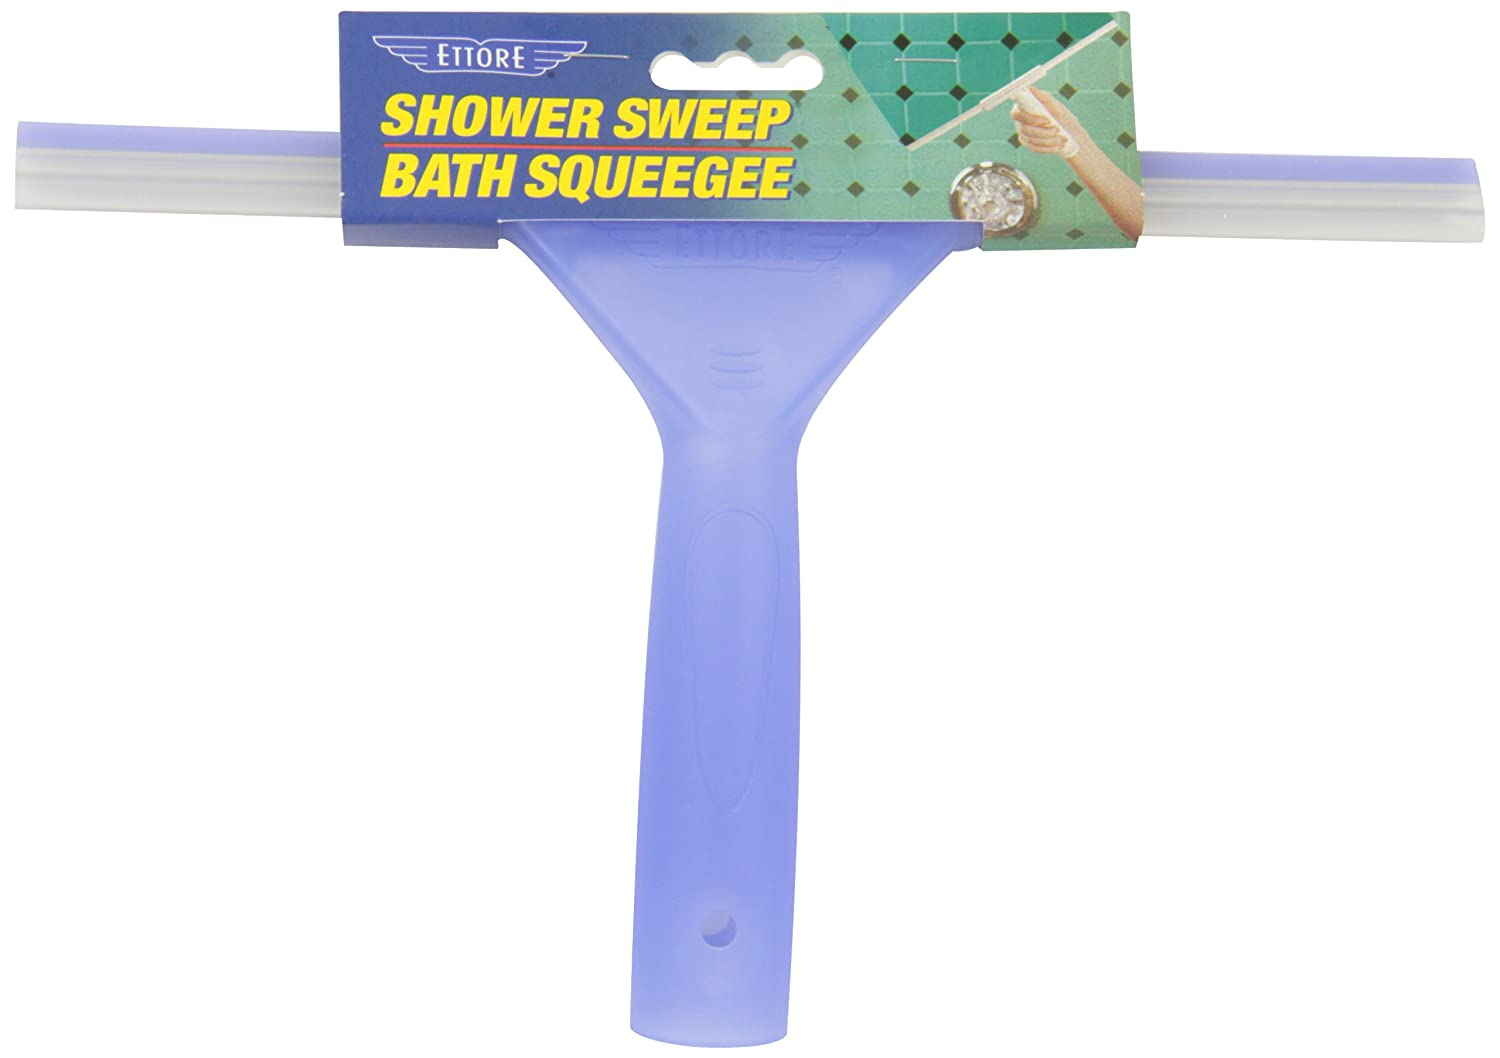 Purple Ettore Products 15102 Ettore Shower Sweep Squeegee